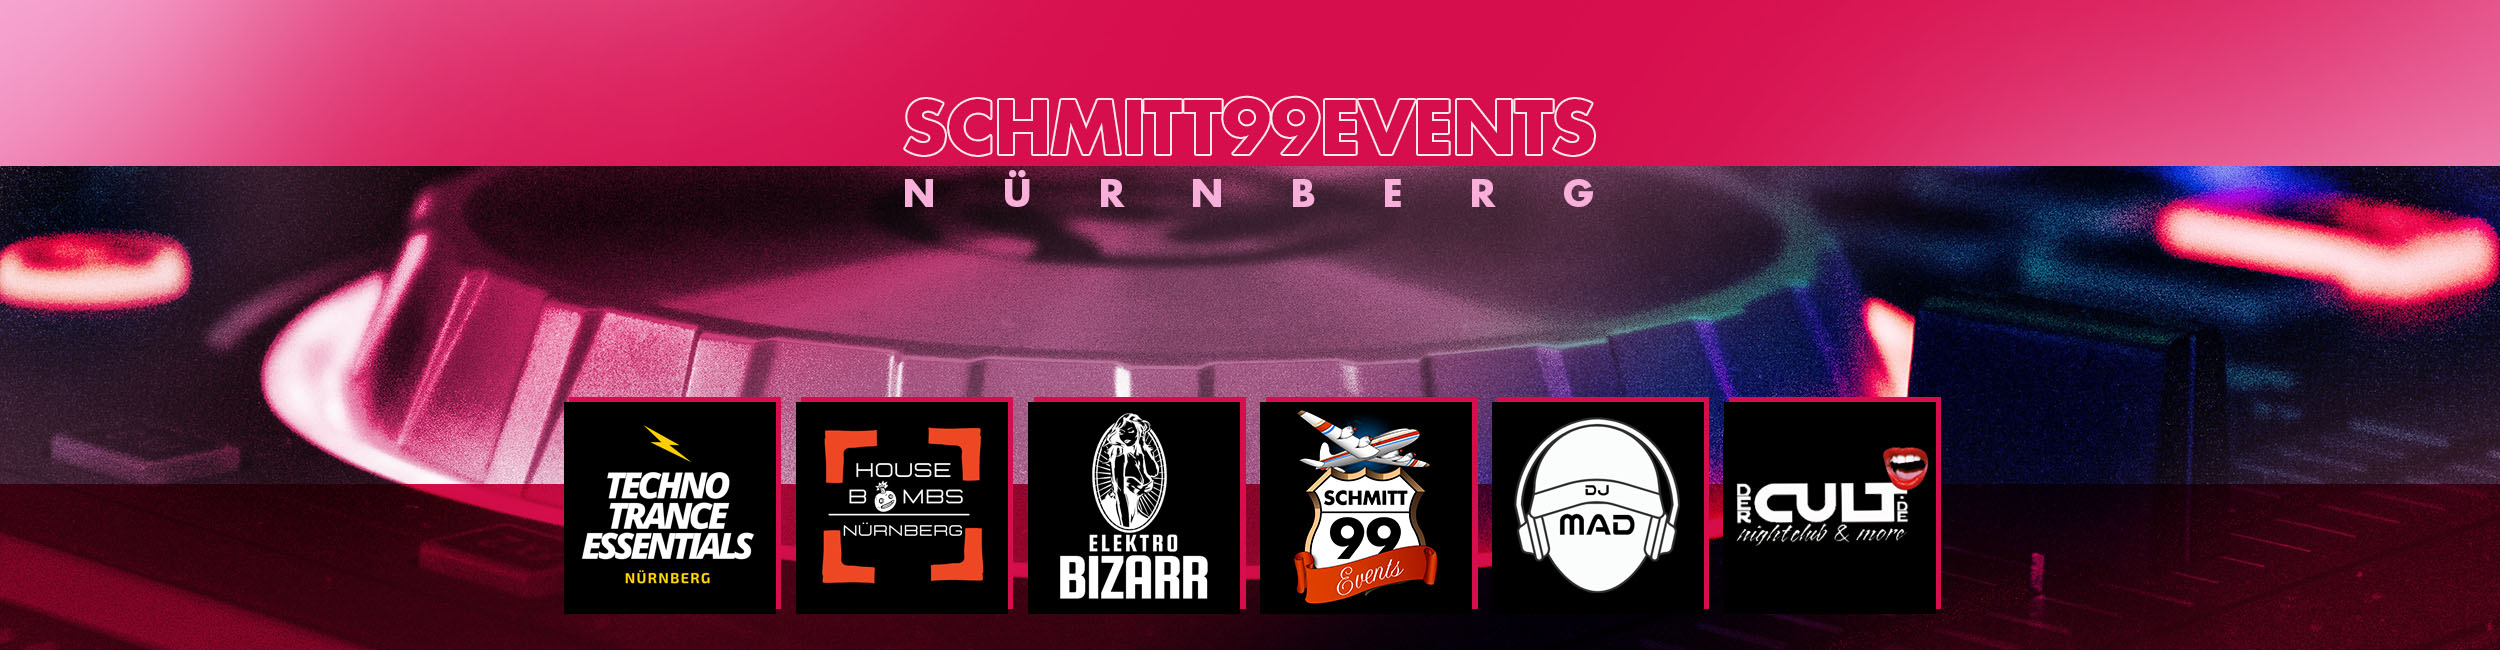 Schmitt99Events